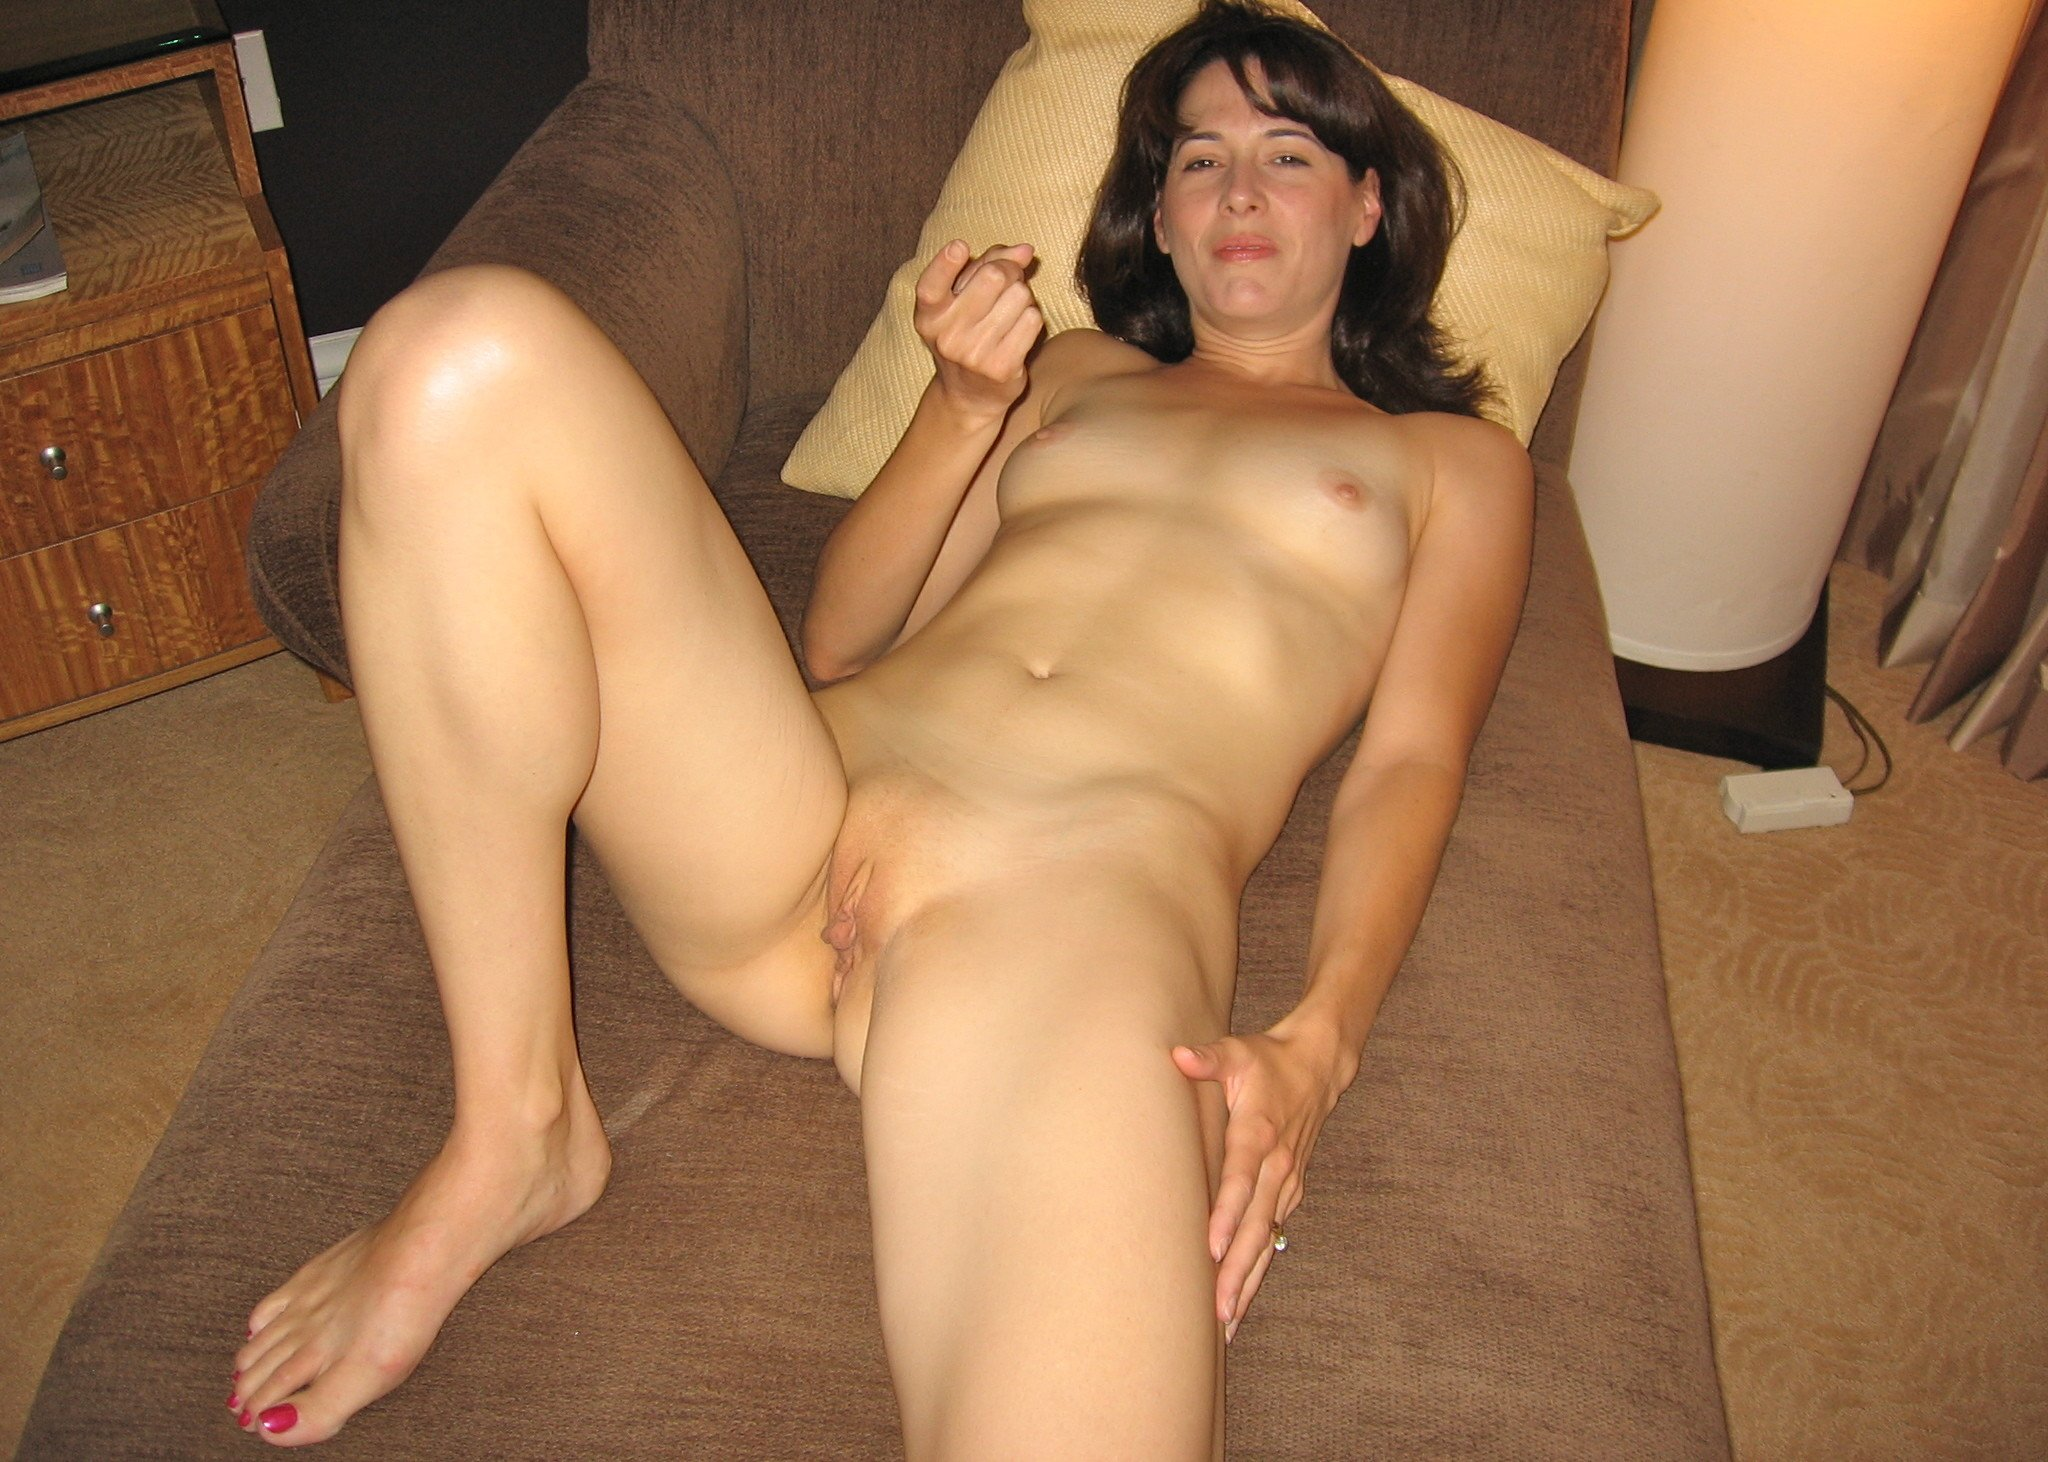 Indian girl full nude sexy xxx pic